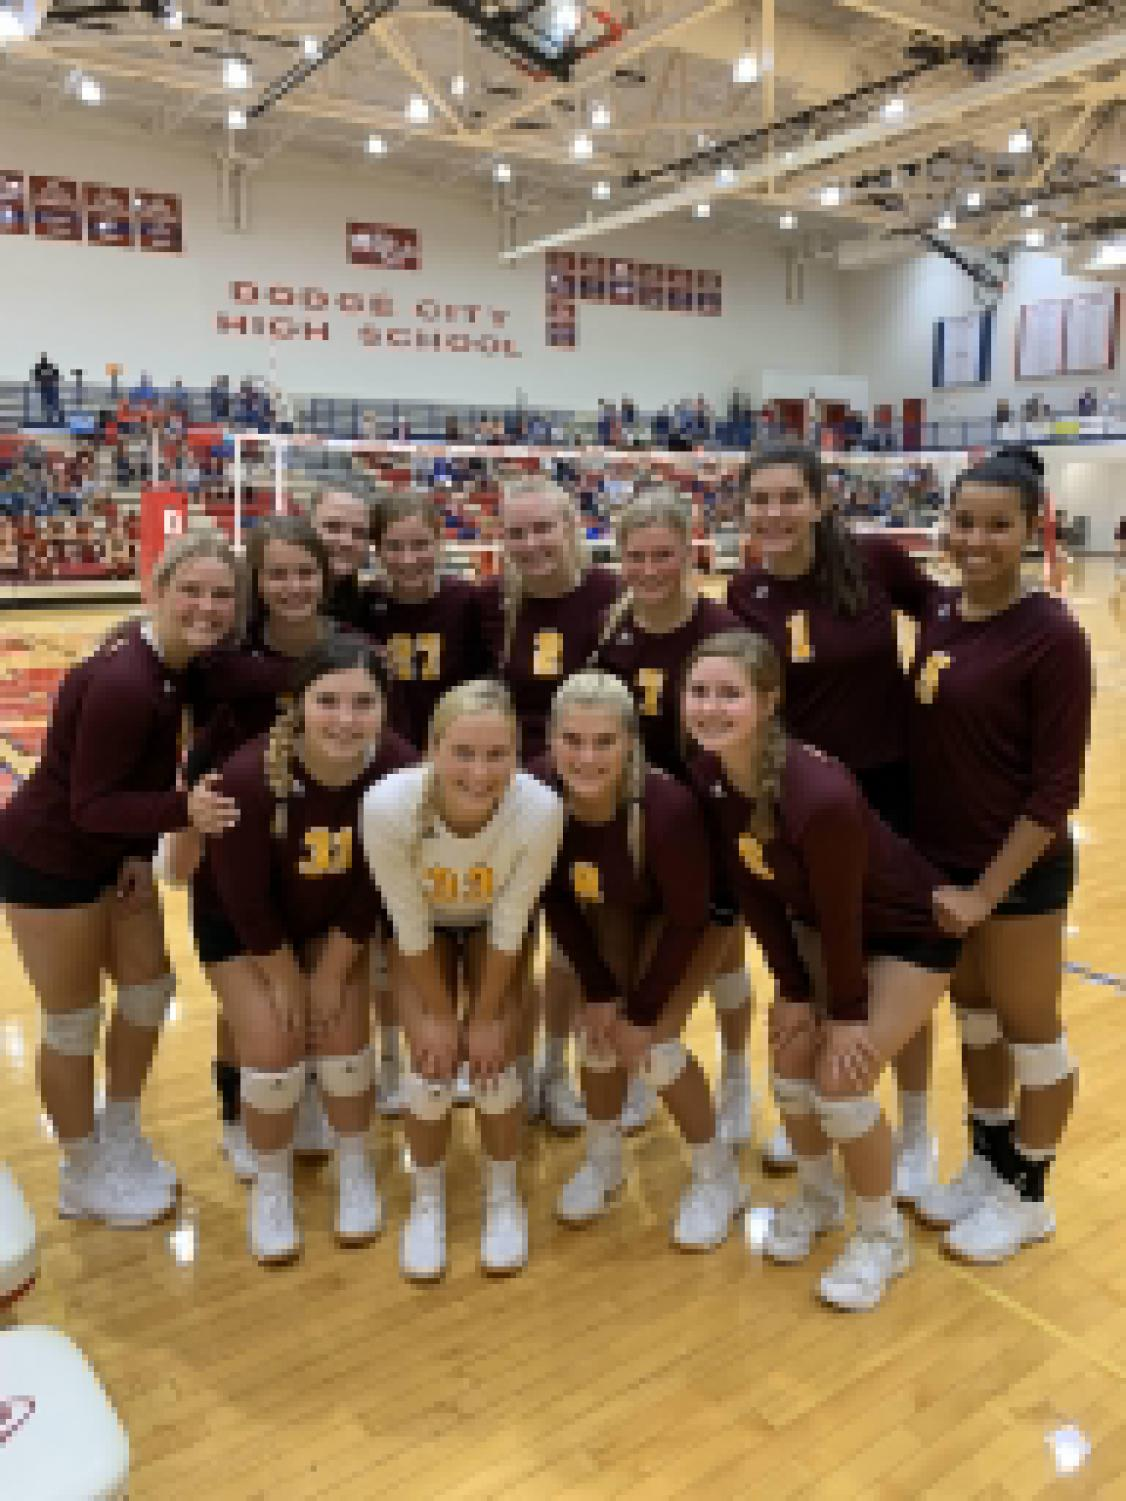 The varsity volleyball team smiling for a picture in between games at Dodge City.